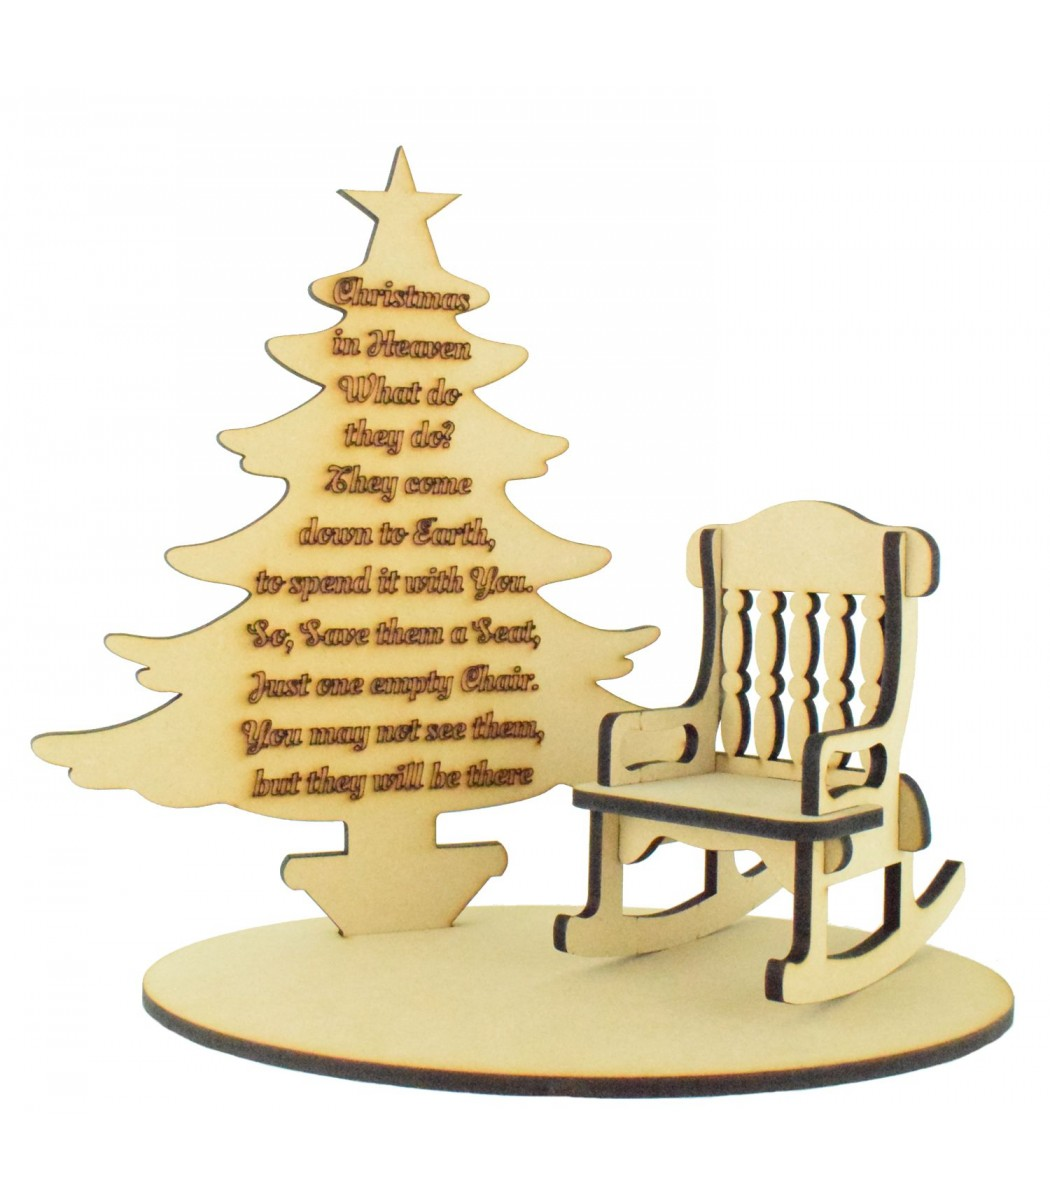 Chrstmas tree base clipart graphic free stock Laser Cut \'Christmas in Heaven\' Quote on a Christmas Tree with Rocking  chair and Base Set graphic free stock